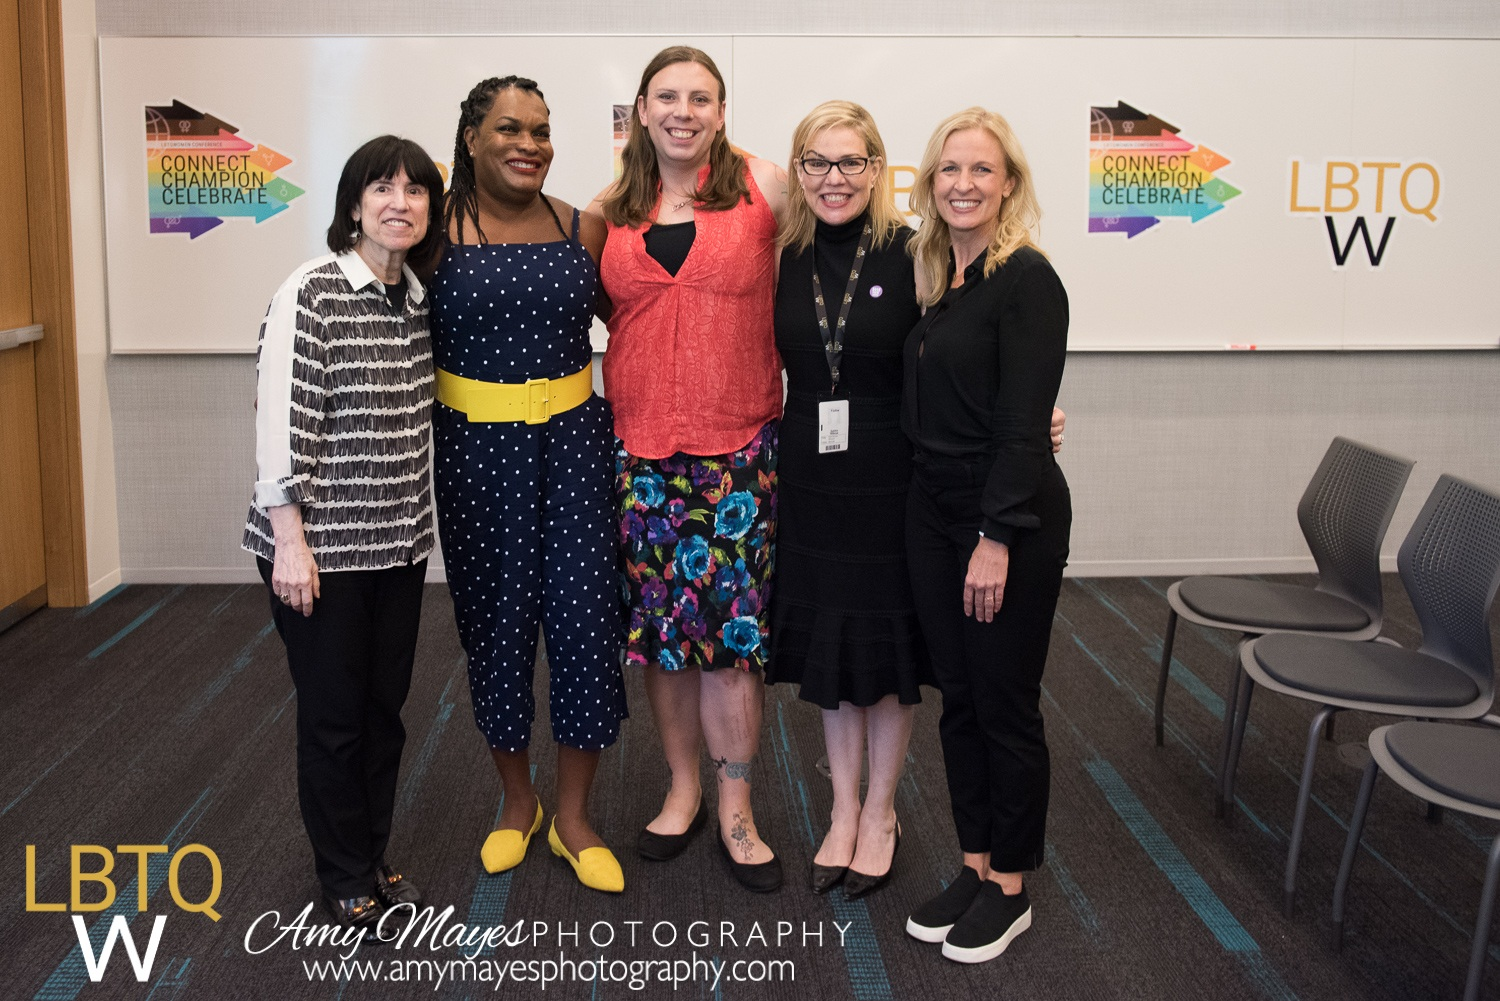 Speakers at the 2019 LBTQ Women Conference on June 26, 2019 in the panel:  LBTQ Women in the Media: Storytelling as a Tool for Visibility and Change  (from left: Imara Jones, Patricia King, Debbie Millman, and Jennifer Brown)